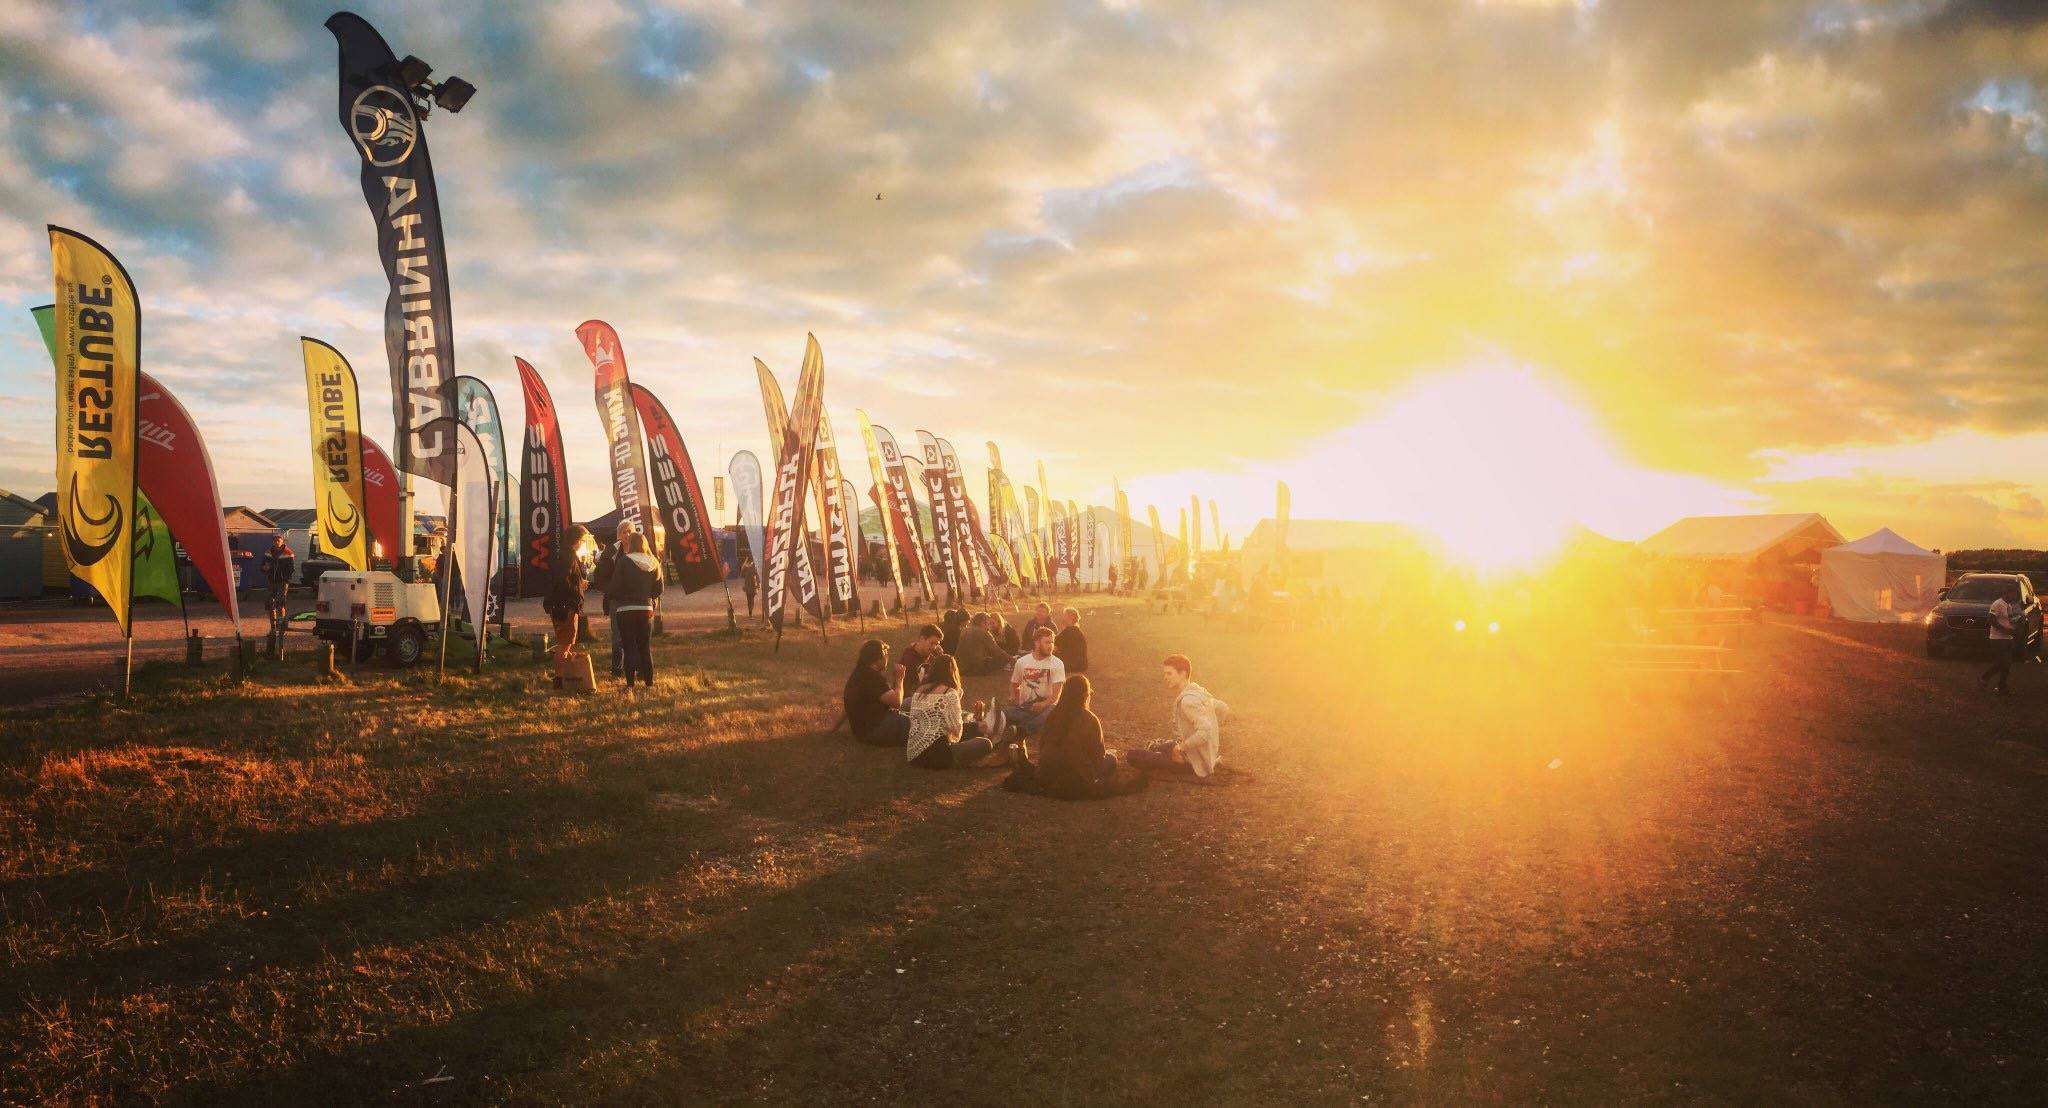 Kitesurfers from around the world gathered at the event site for the Virgin Kitesurfing Armada Festival